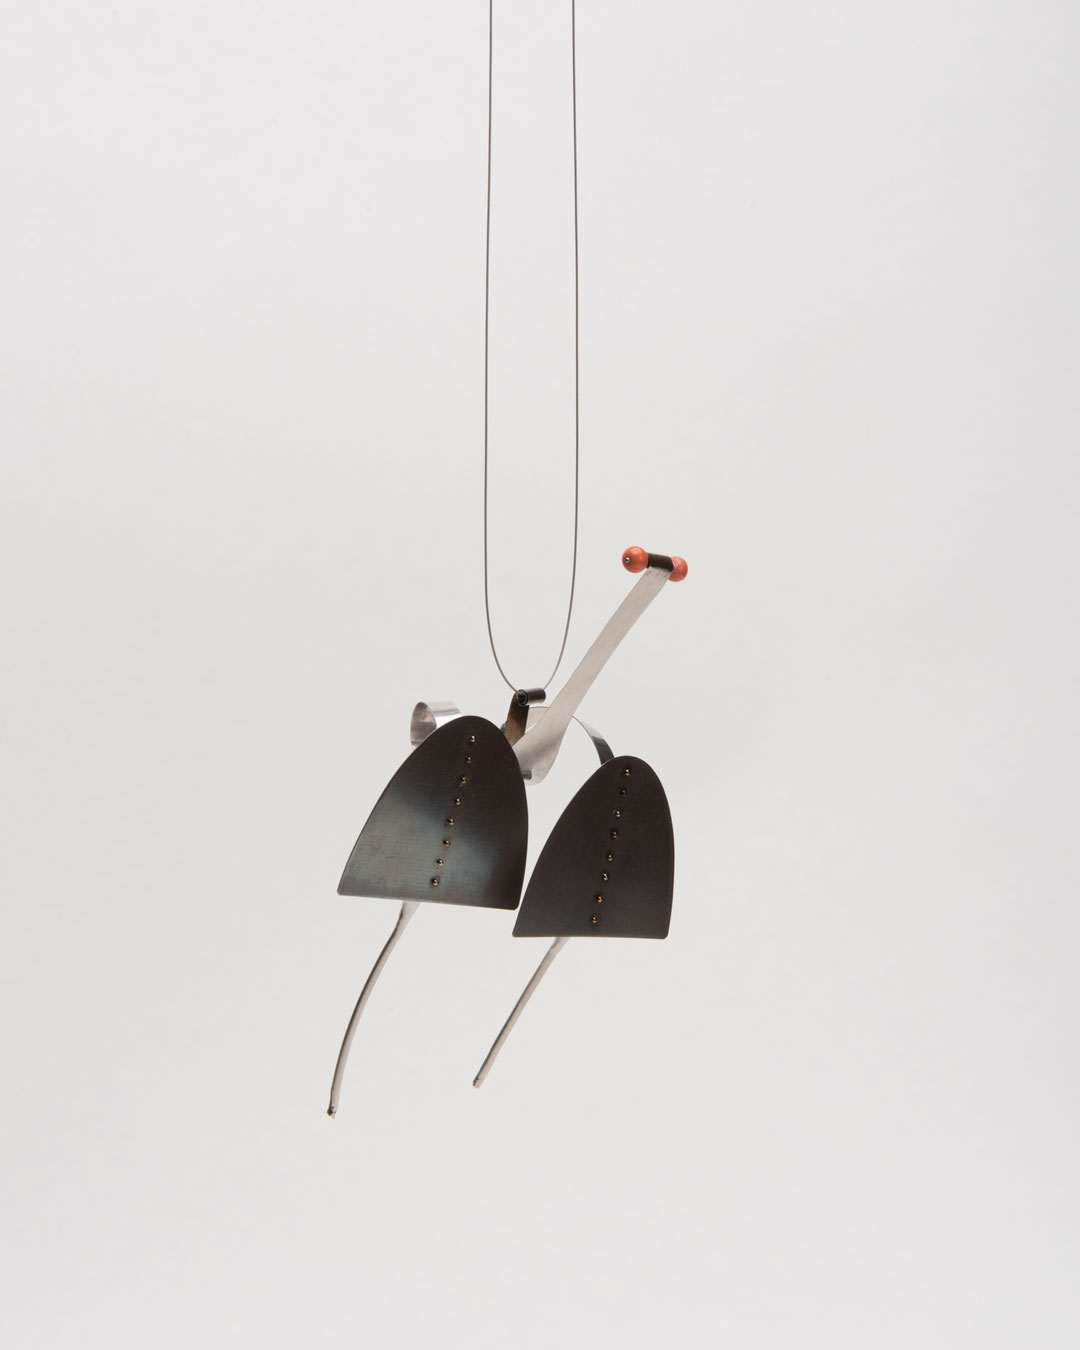 Andrea Wippermann, Lupus Papilio, 2017, pendant; stainless steel, coral, blackened silver, nylon, 130 x 80 x 40 mm, €2200